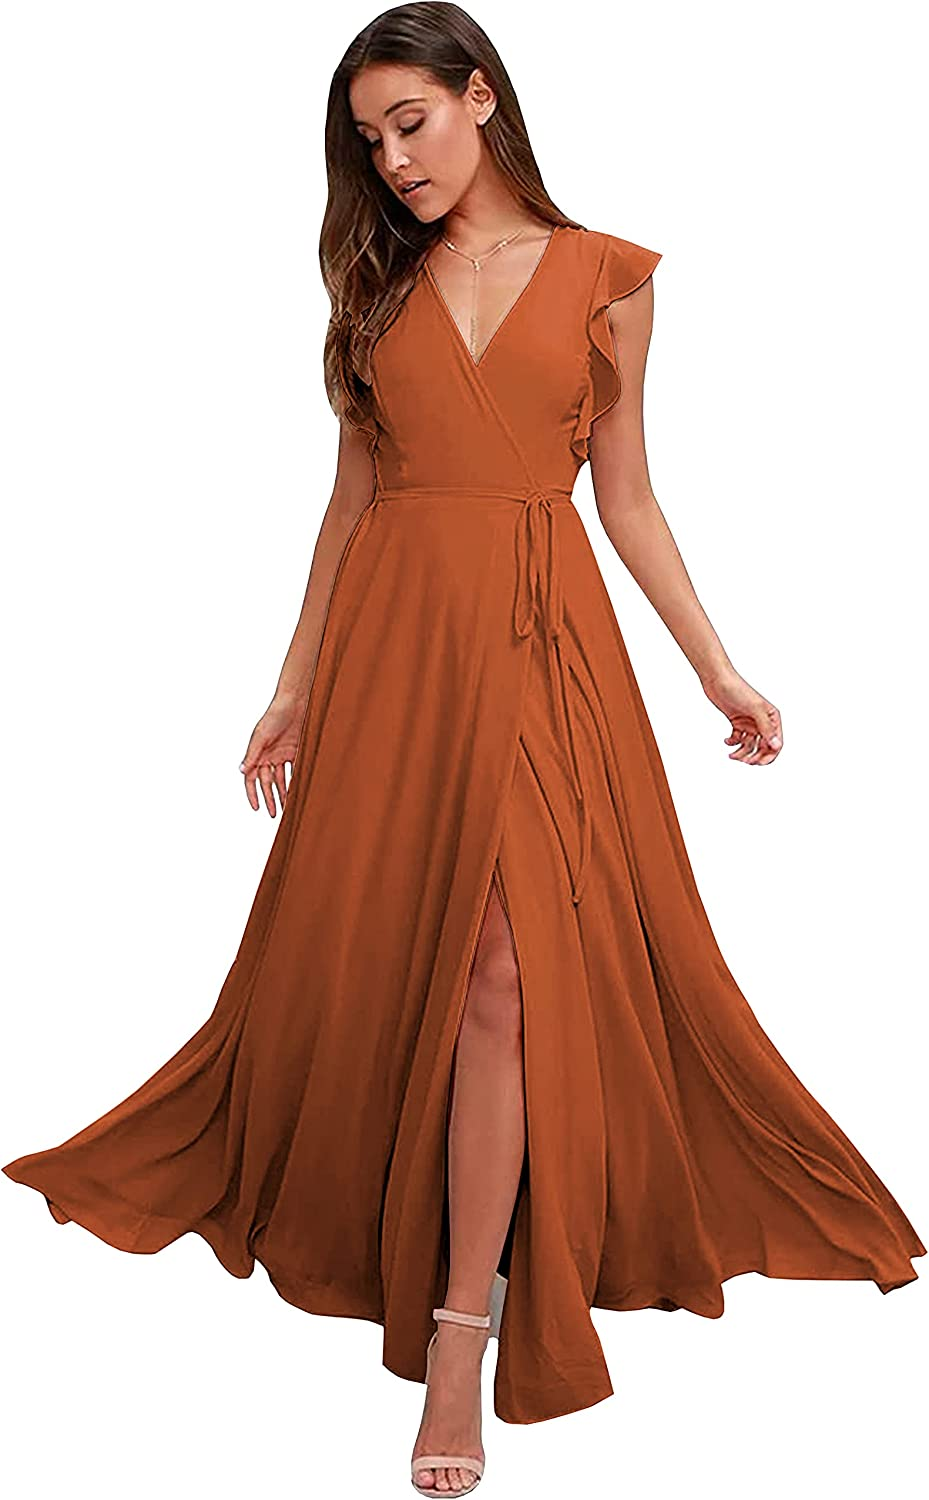 Women's V Neck Slit Bridesmaid Dress with Ruffle Sleeves A Line Chiffon Long Formal Evening Party Gowns